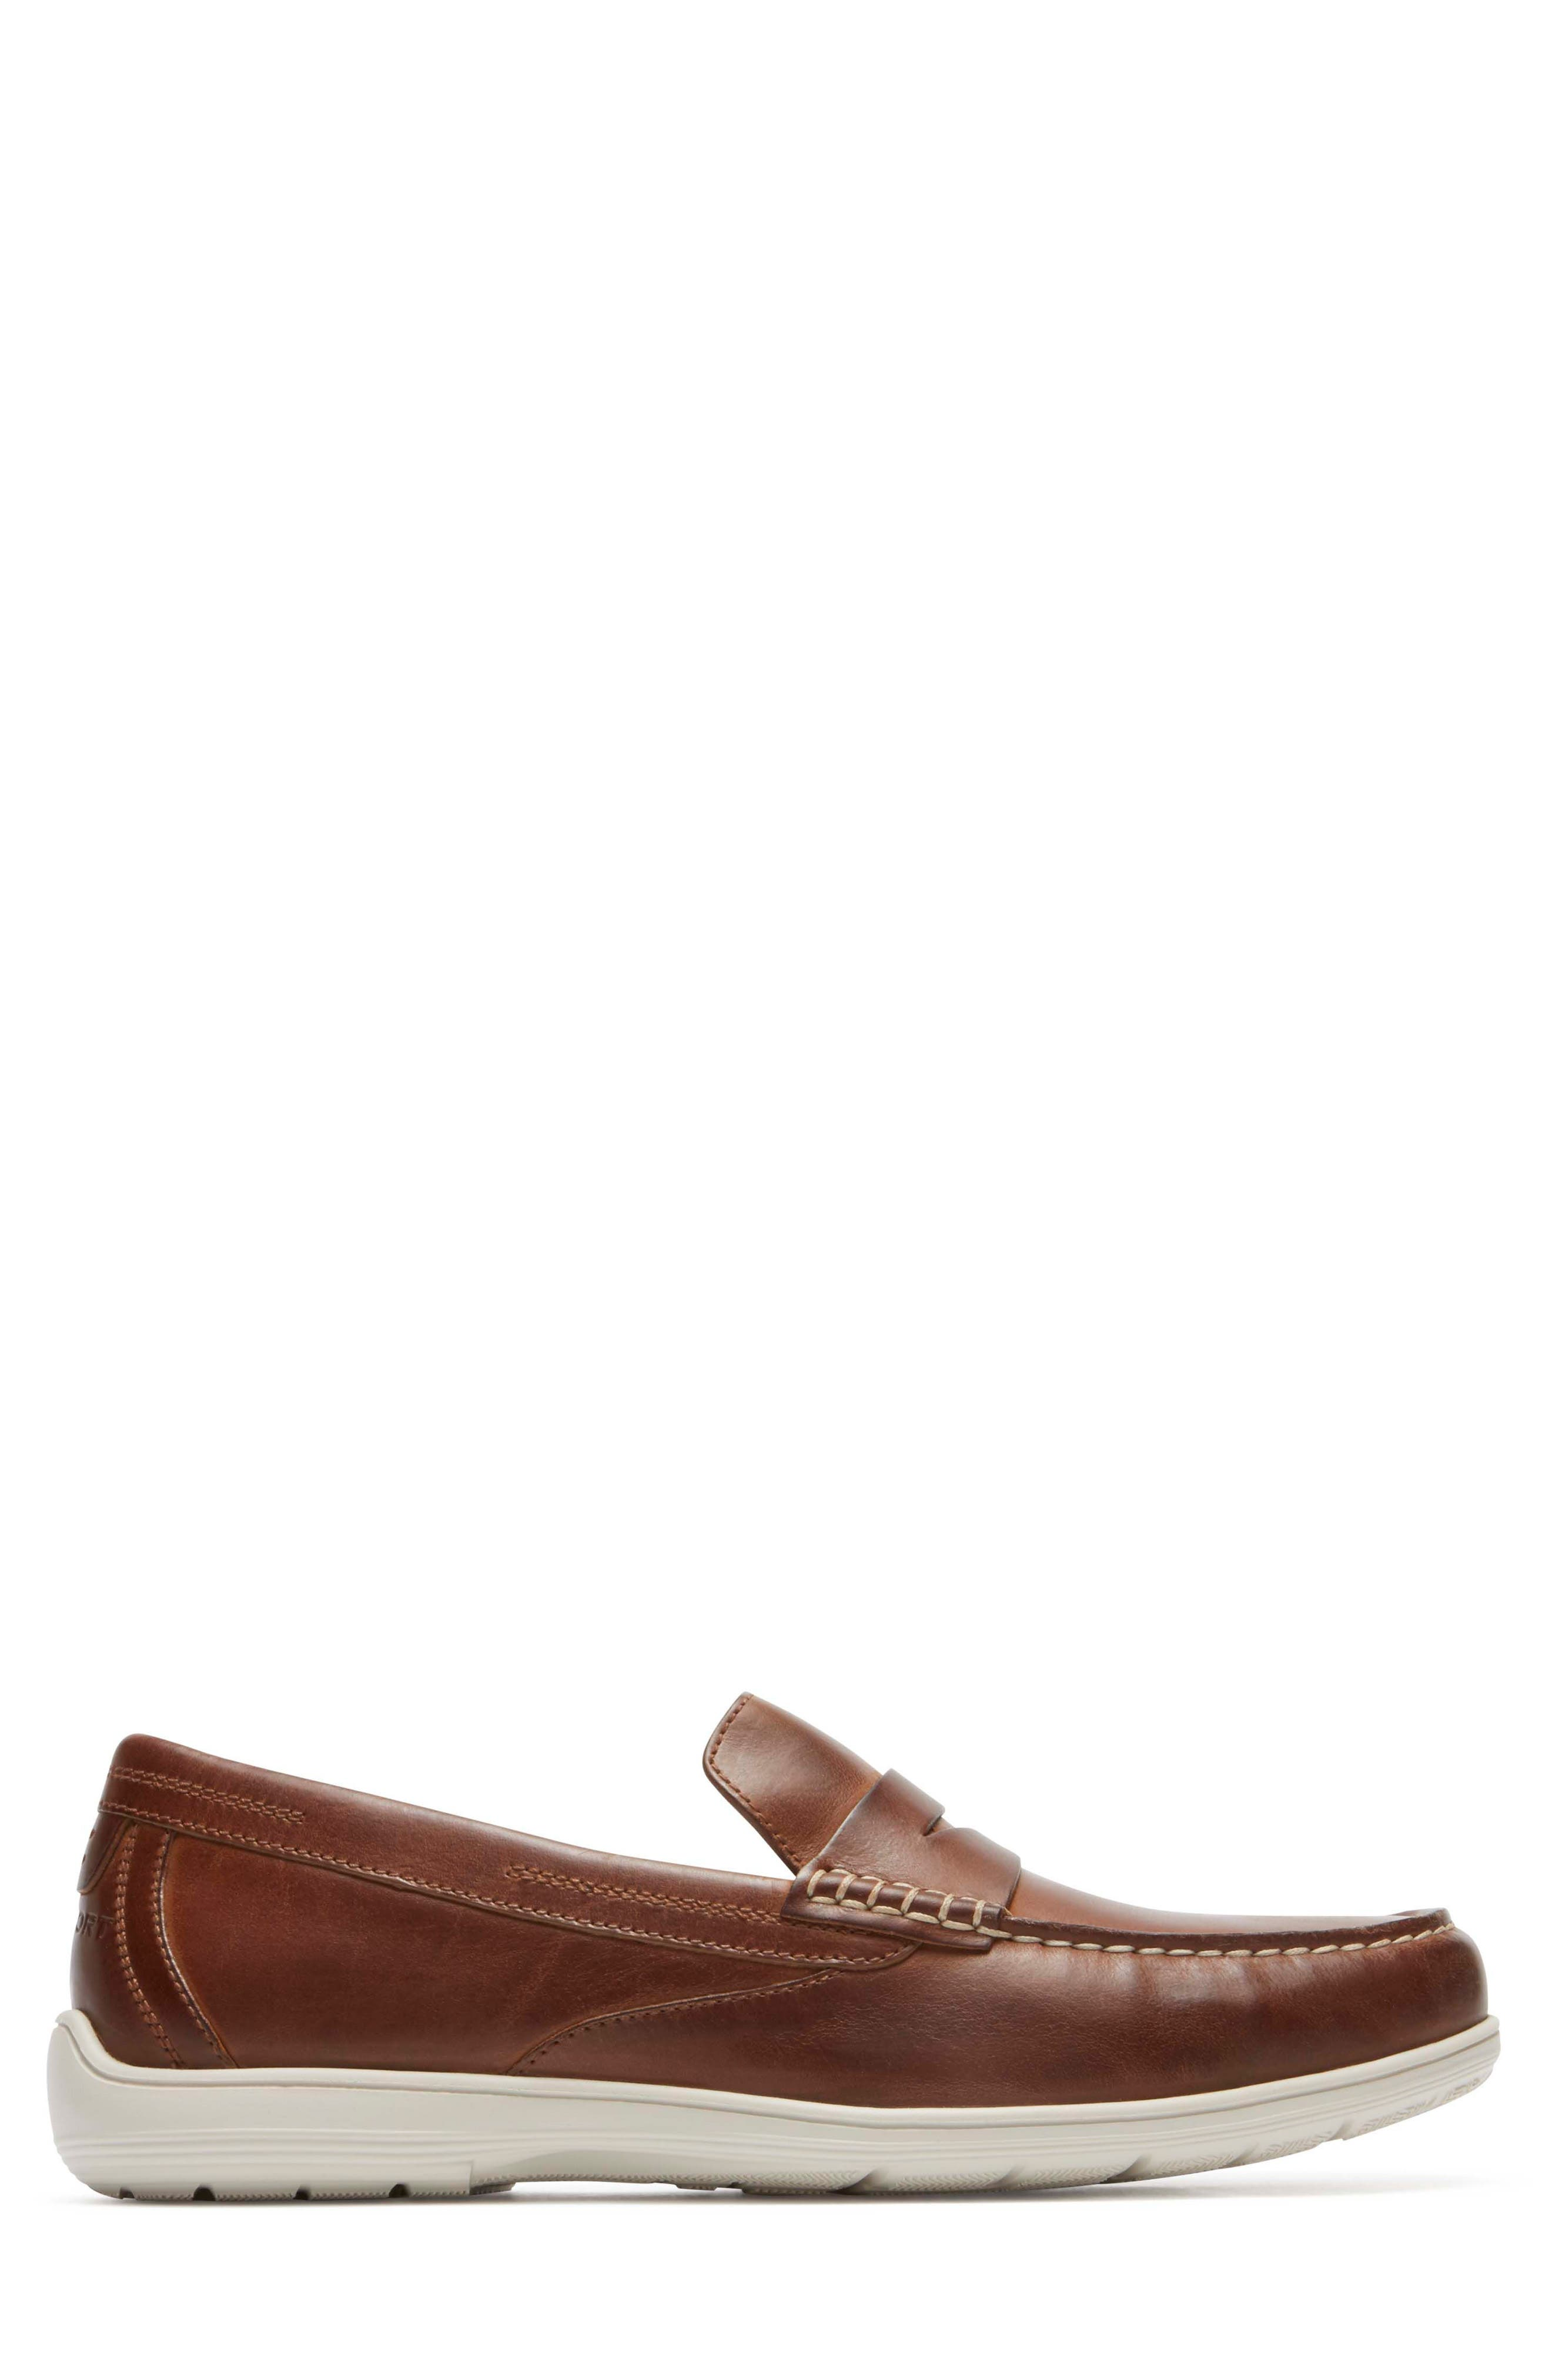 Total Motion Penny Loafer,                             Alternate thumbnail 7, color,